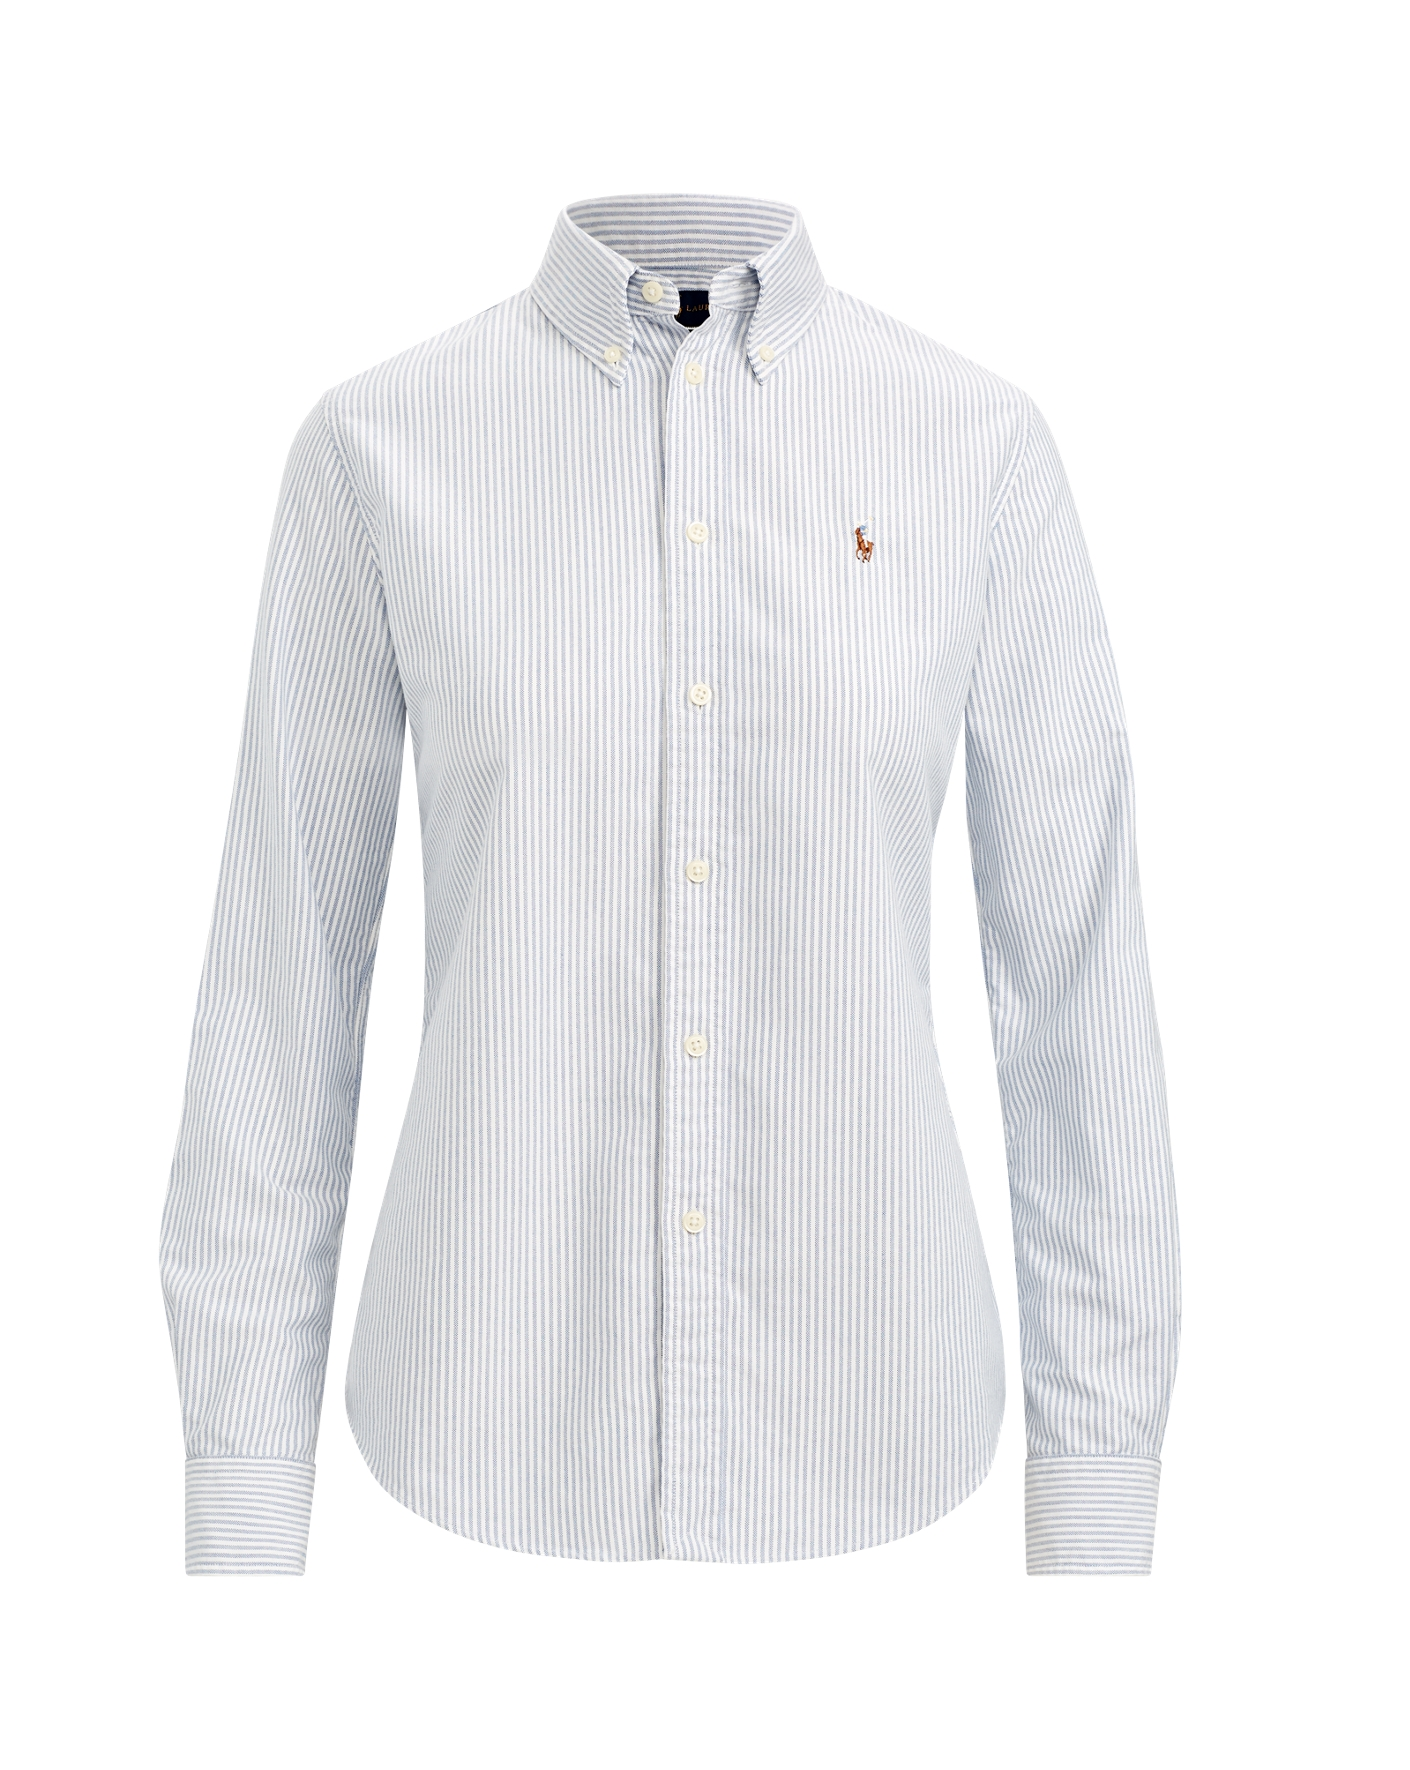 Women's Polo T-shirts, Button Downs, & Tops | Polo Ralph Lauren